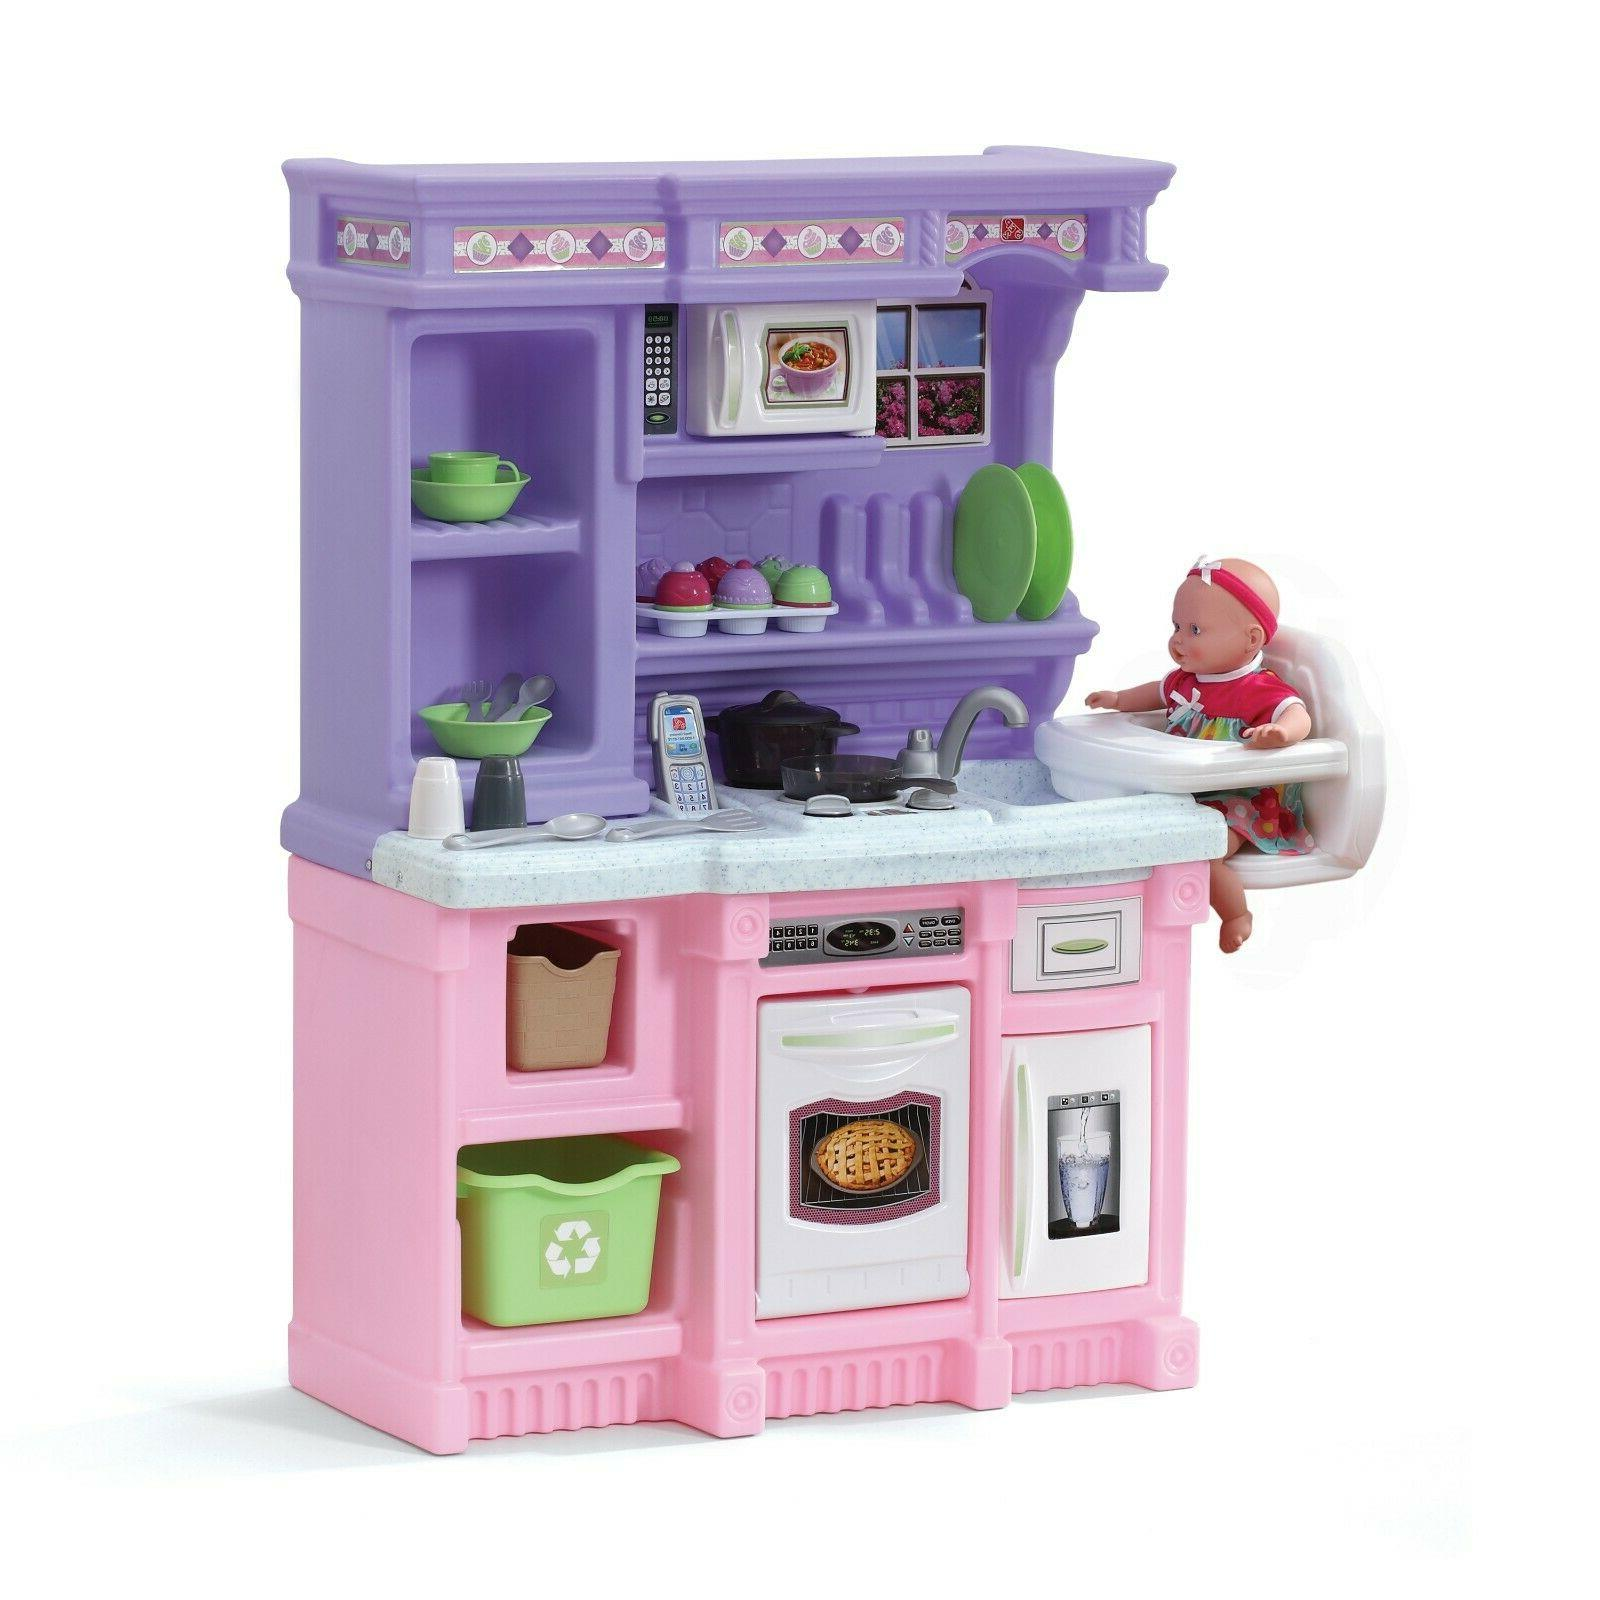 Step2 Little Bakers Kids Play Kitchen with 30 Piece Accessor